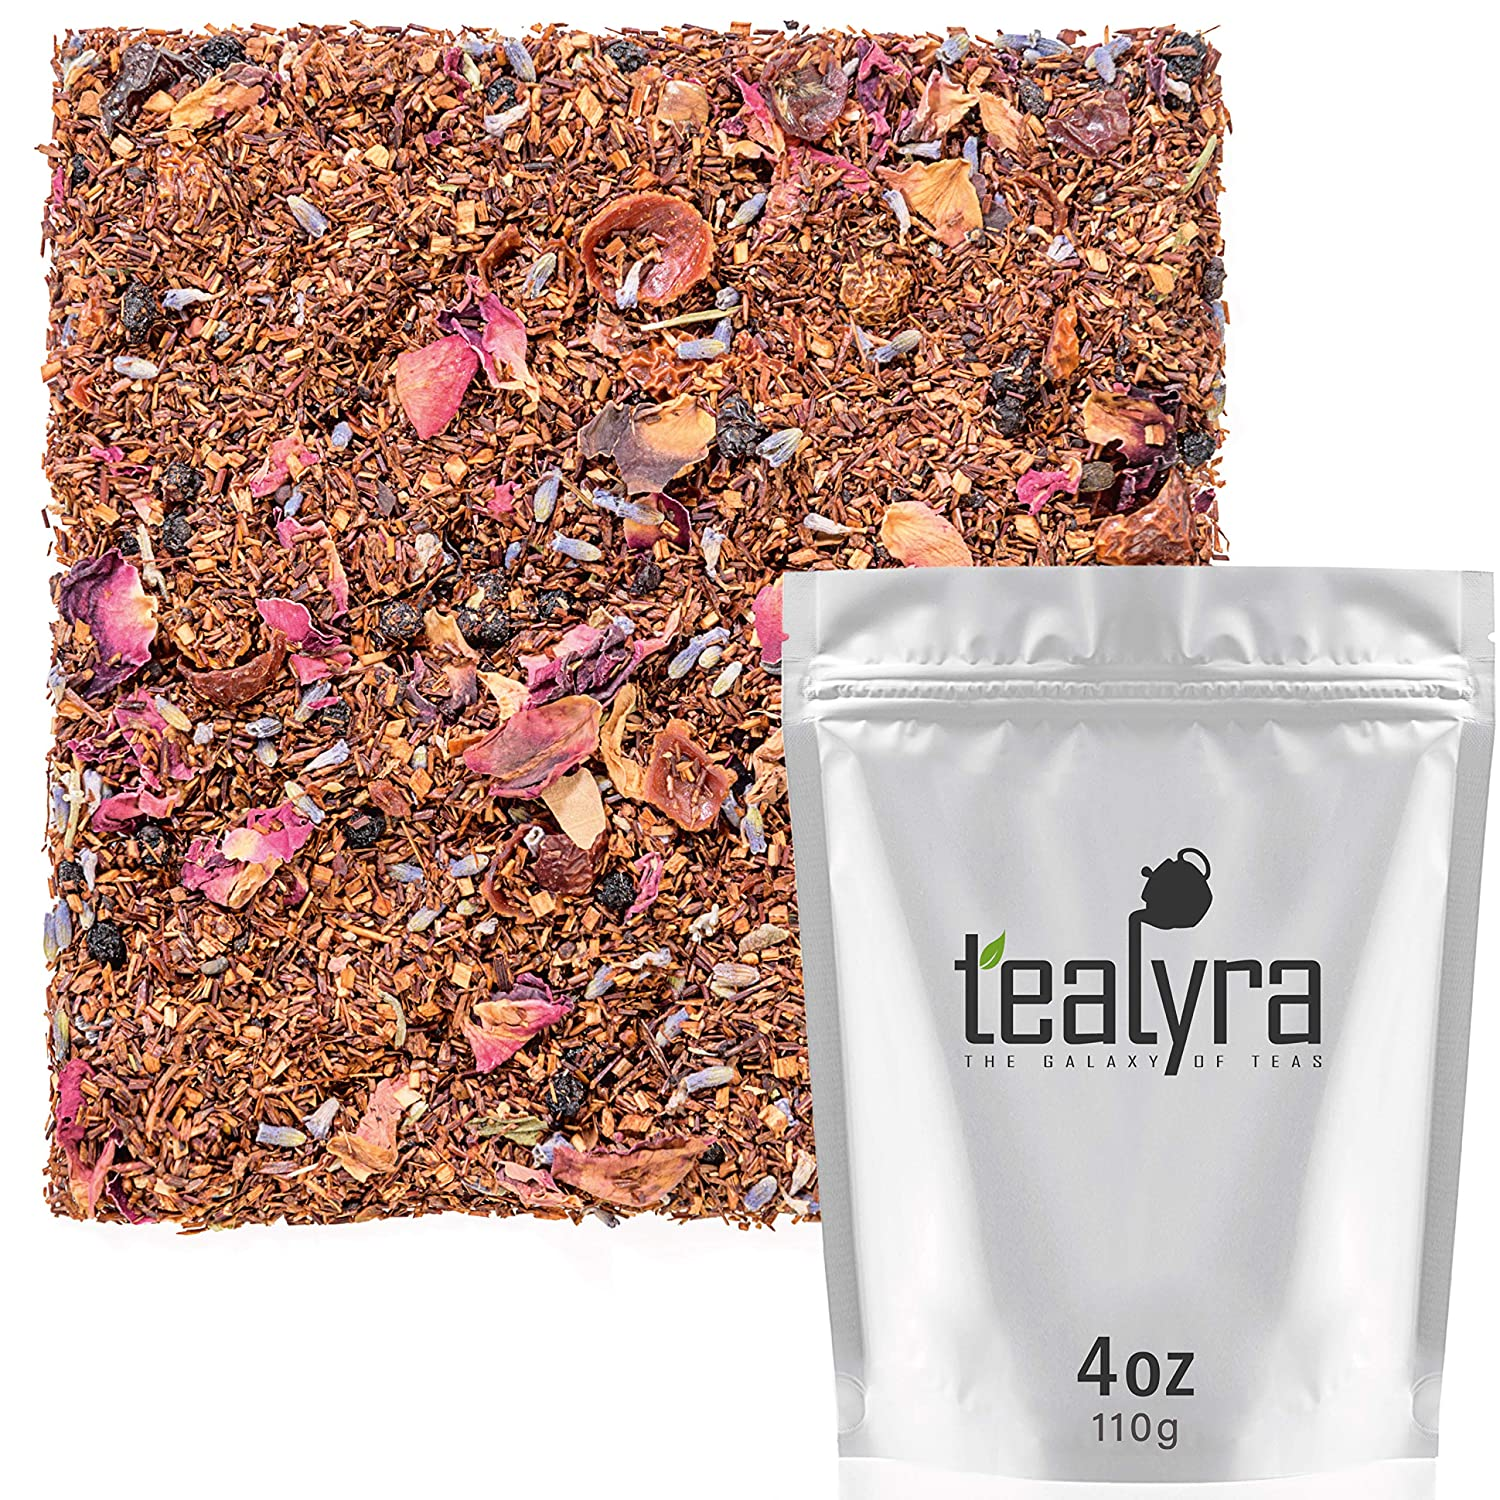 Tealyra Max 61% OFF Max 67% OFF - Rooibos Roman Province Bush Blueb and Red Lavender